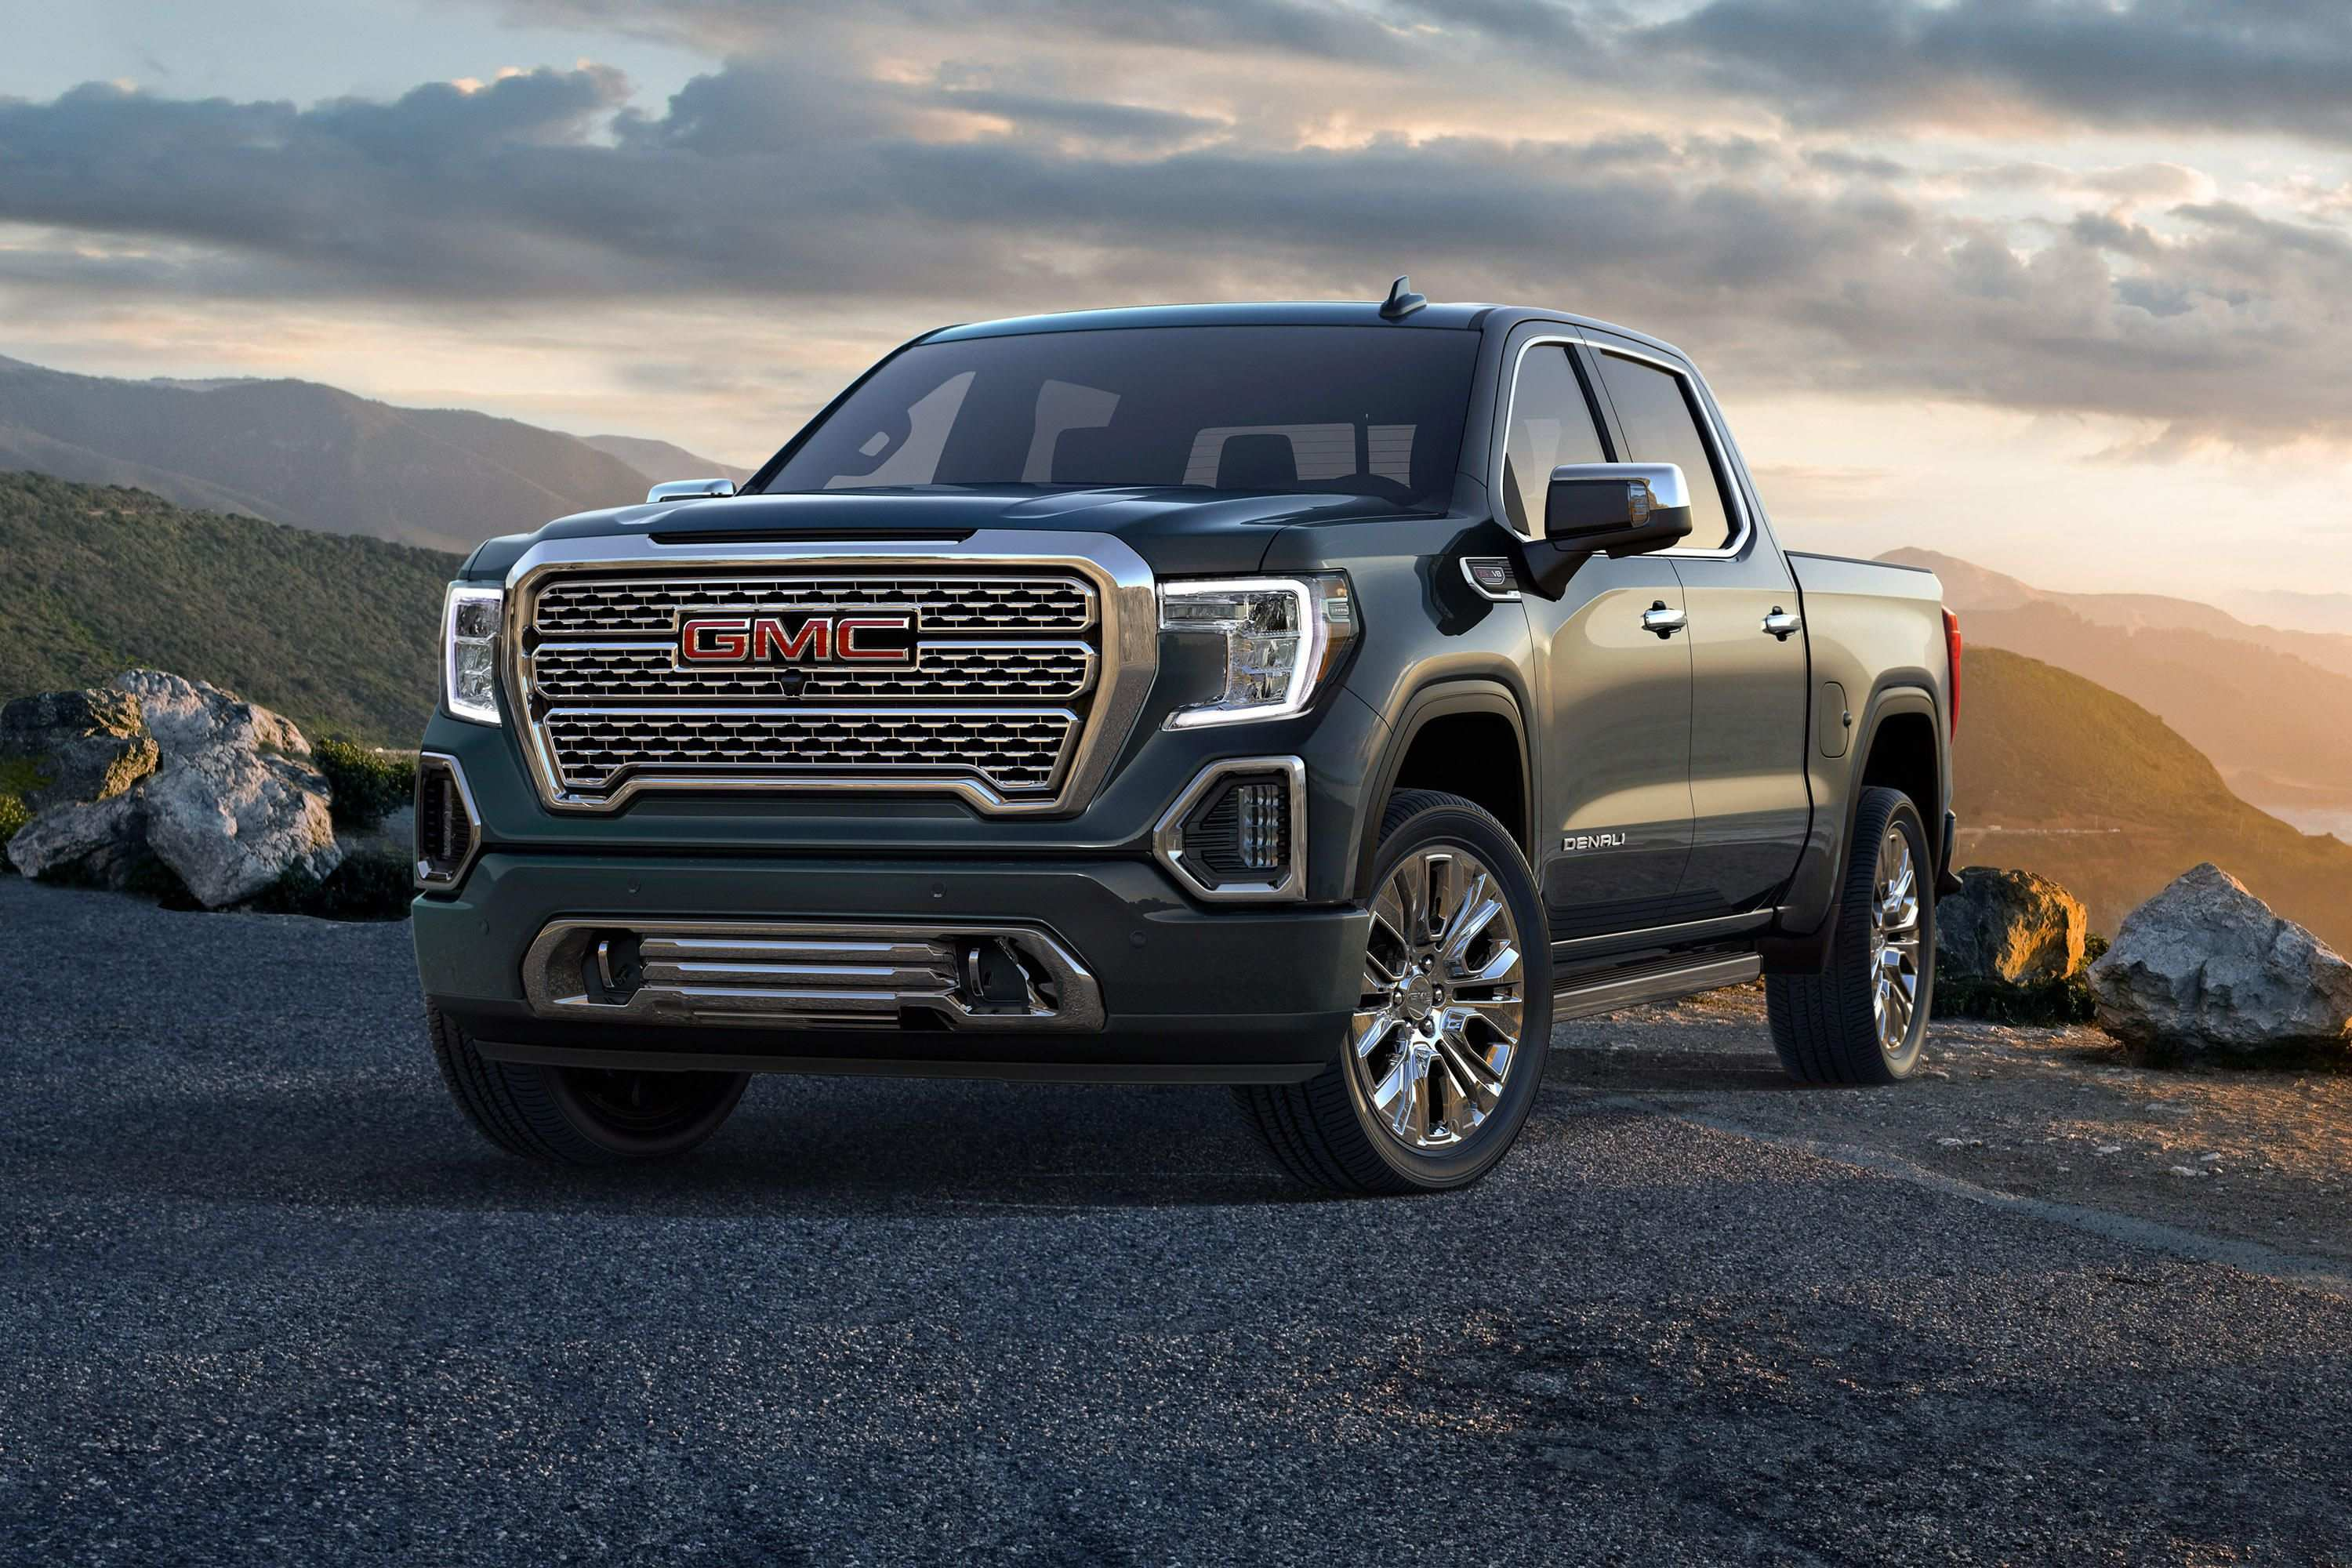 80 The Best 2019 Gmc Sierra 1500 Denali Exterior And Interior